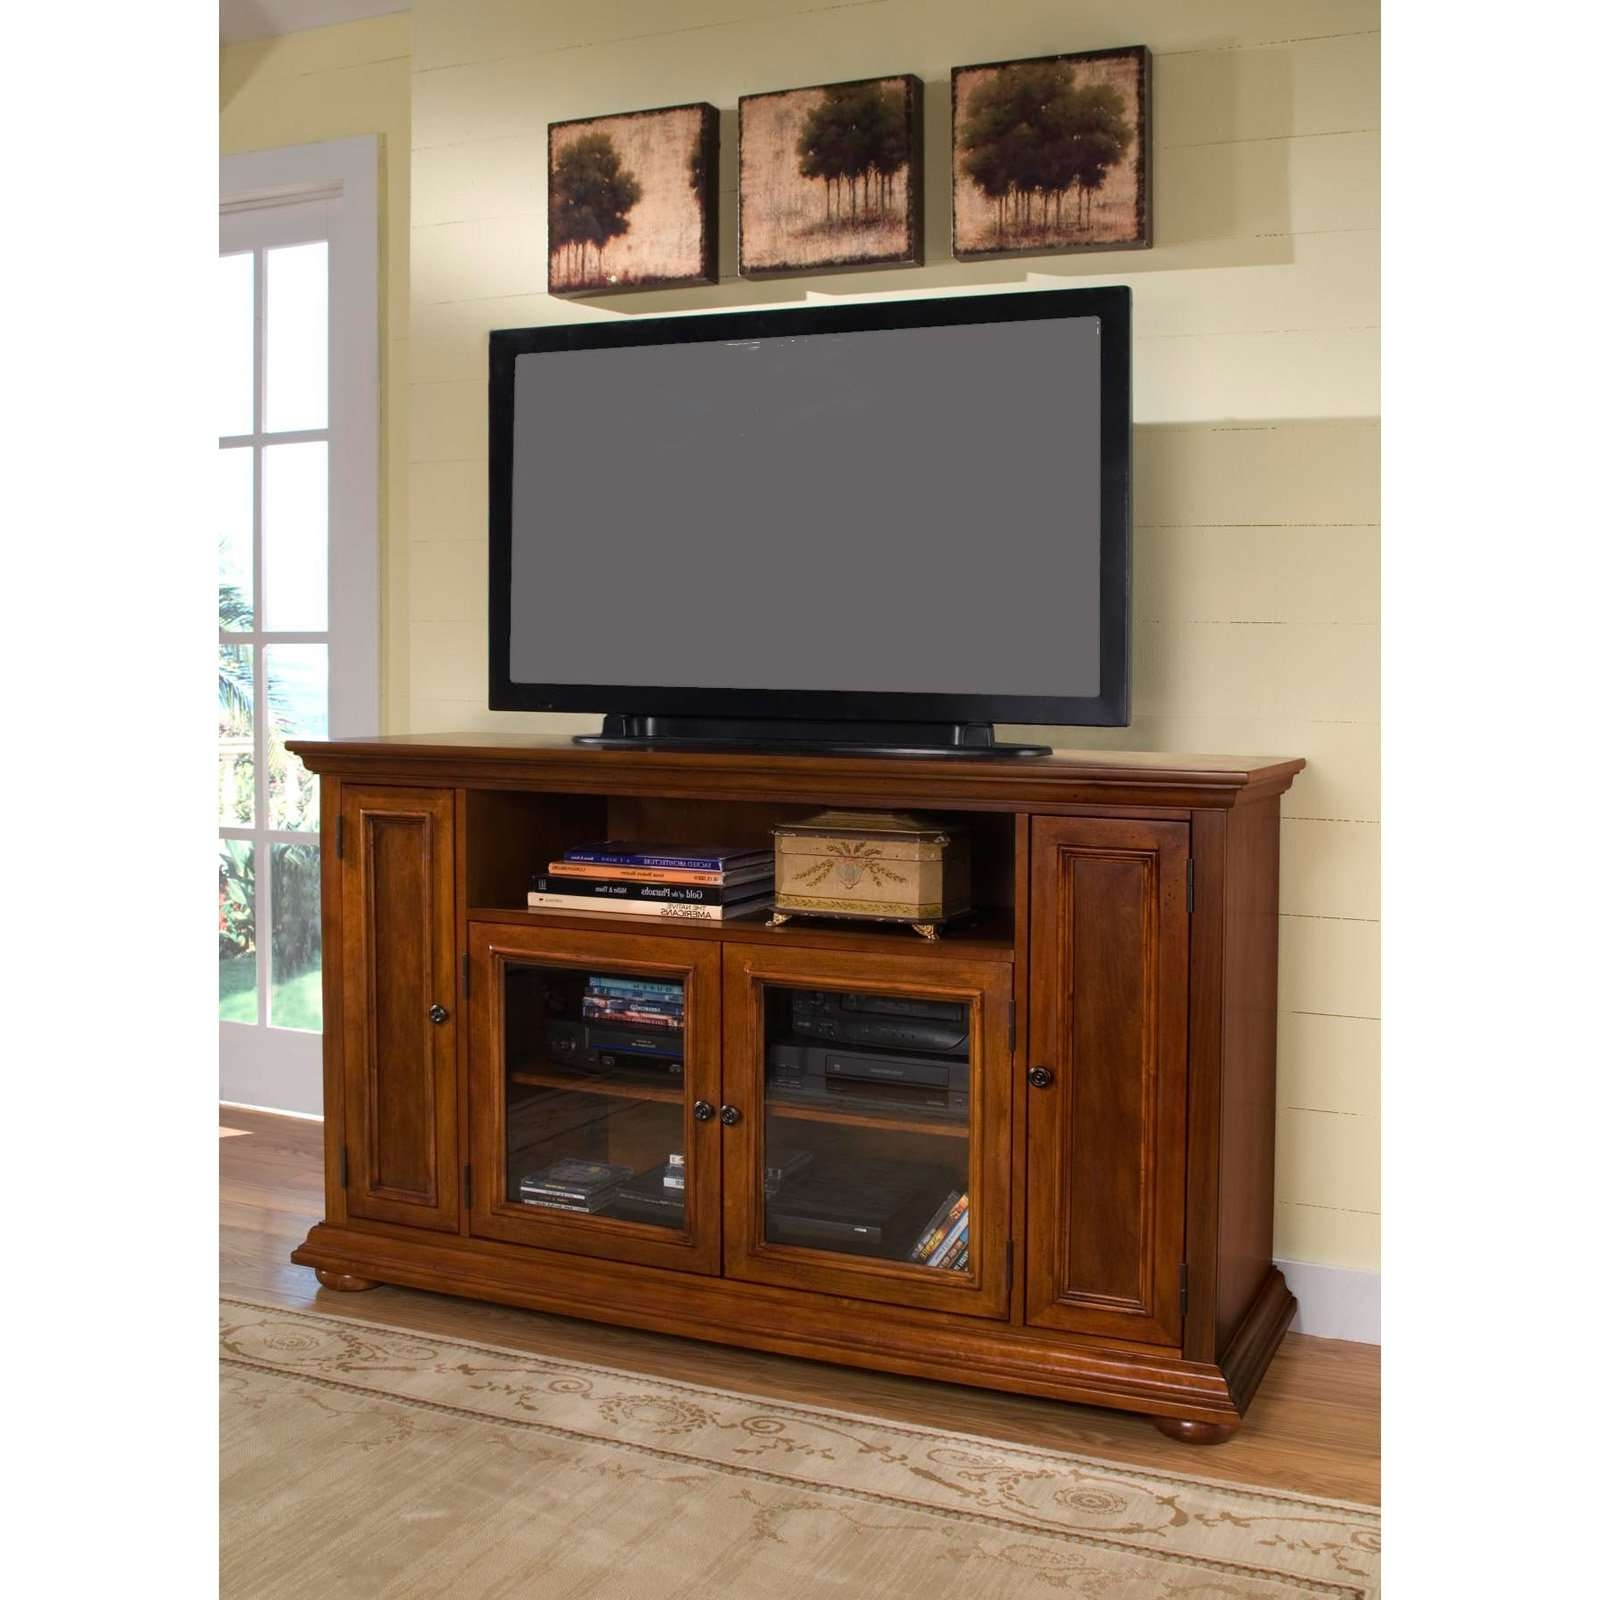 Rectangle Black Flat Screen Tv Over Brown Wooden Cabinet With Regarding Wall Mounted Tv Cabinets For Flat Screens With Doors (View 10 of 20)